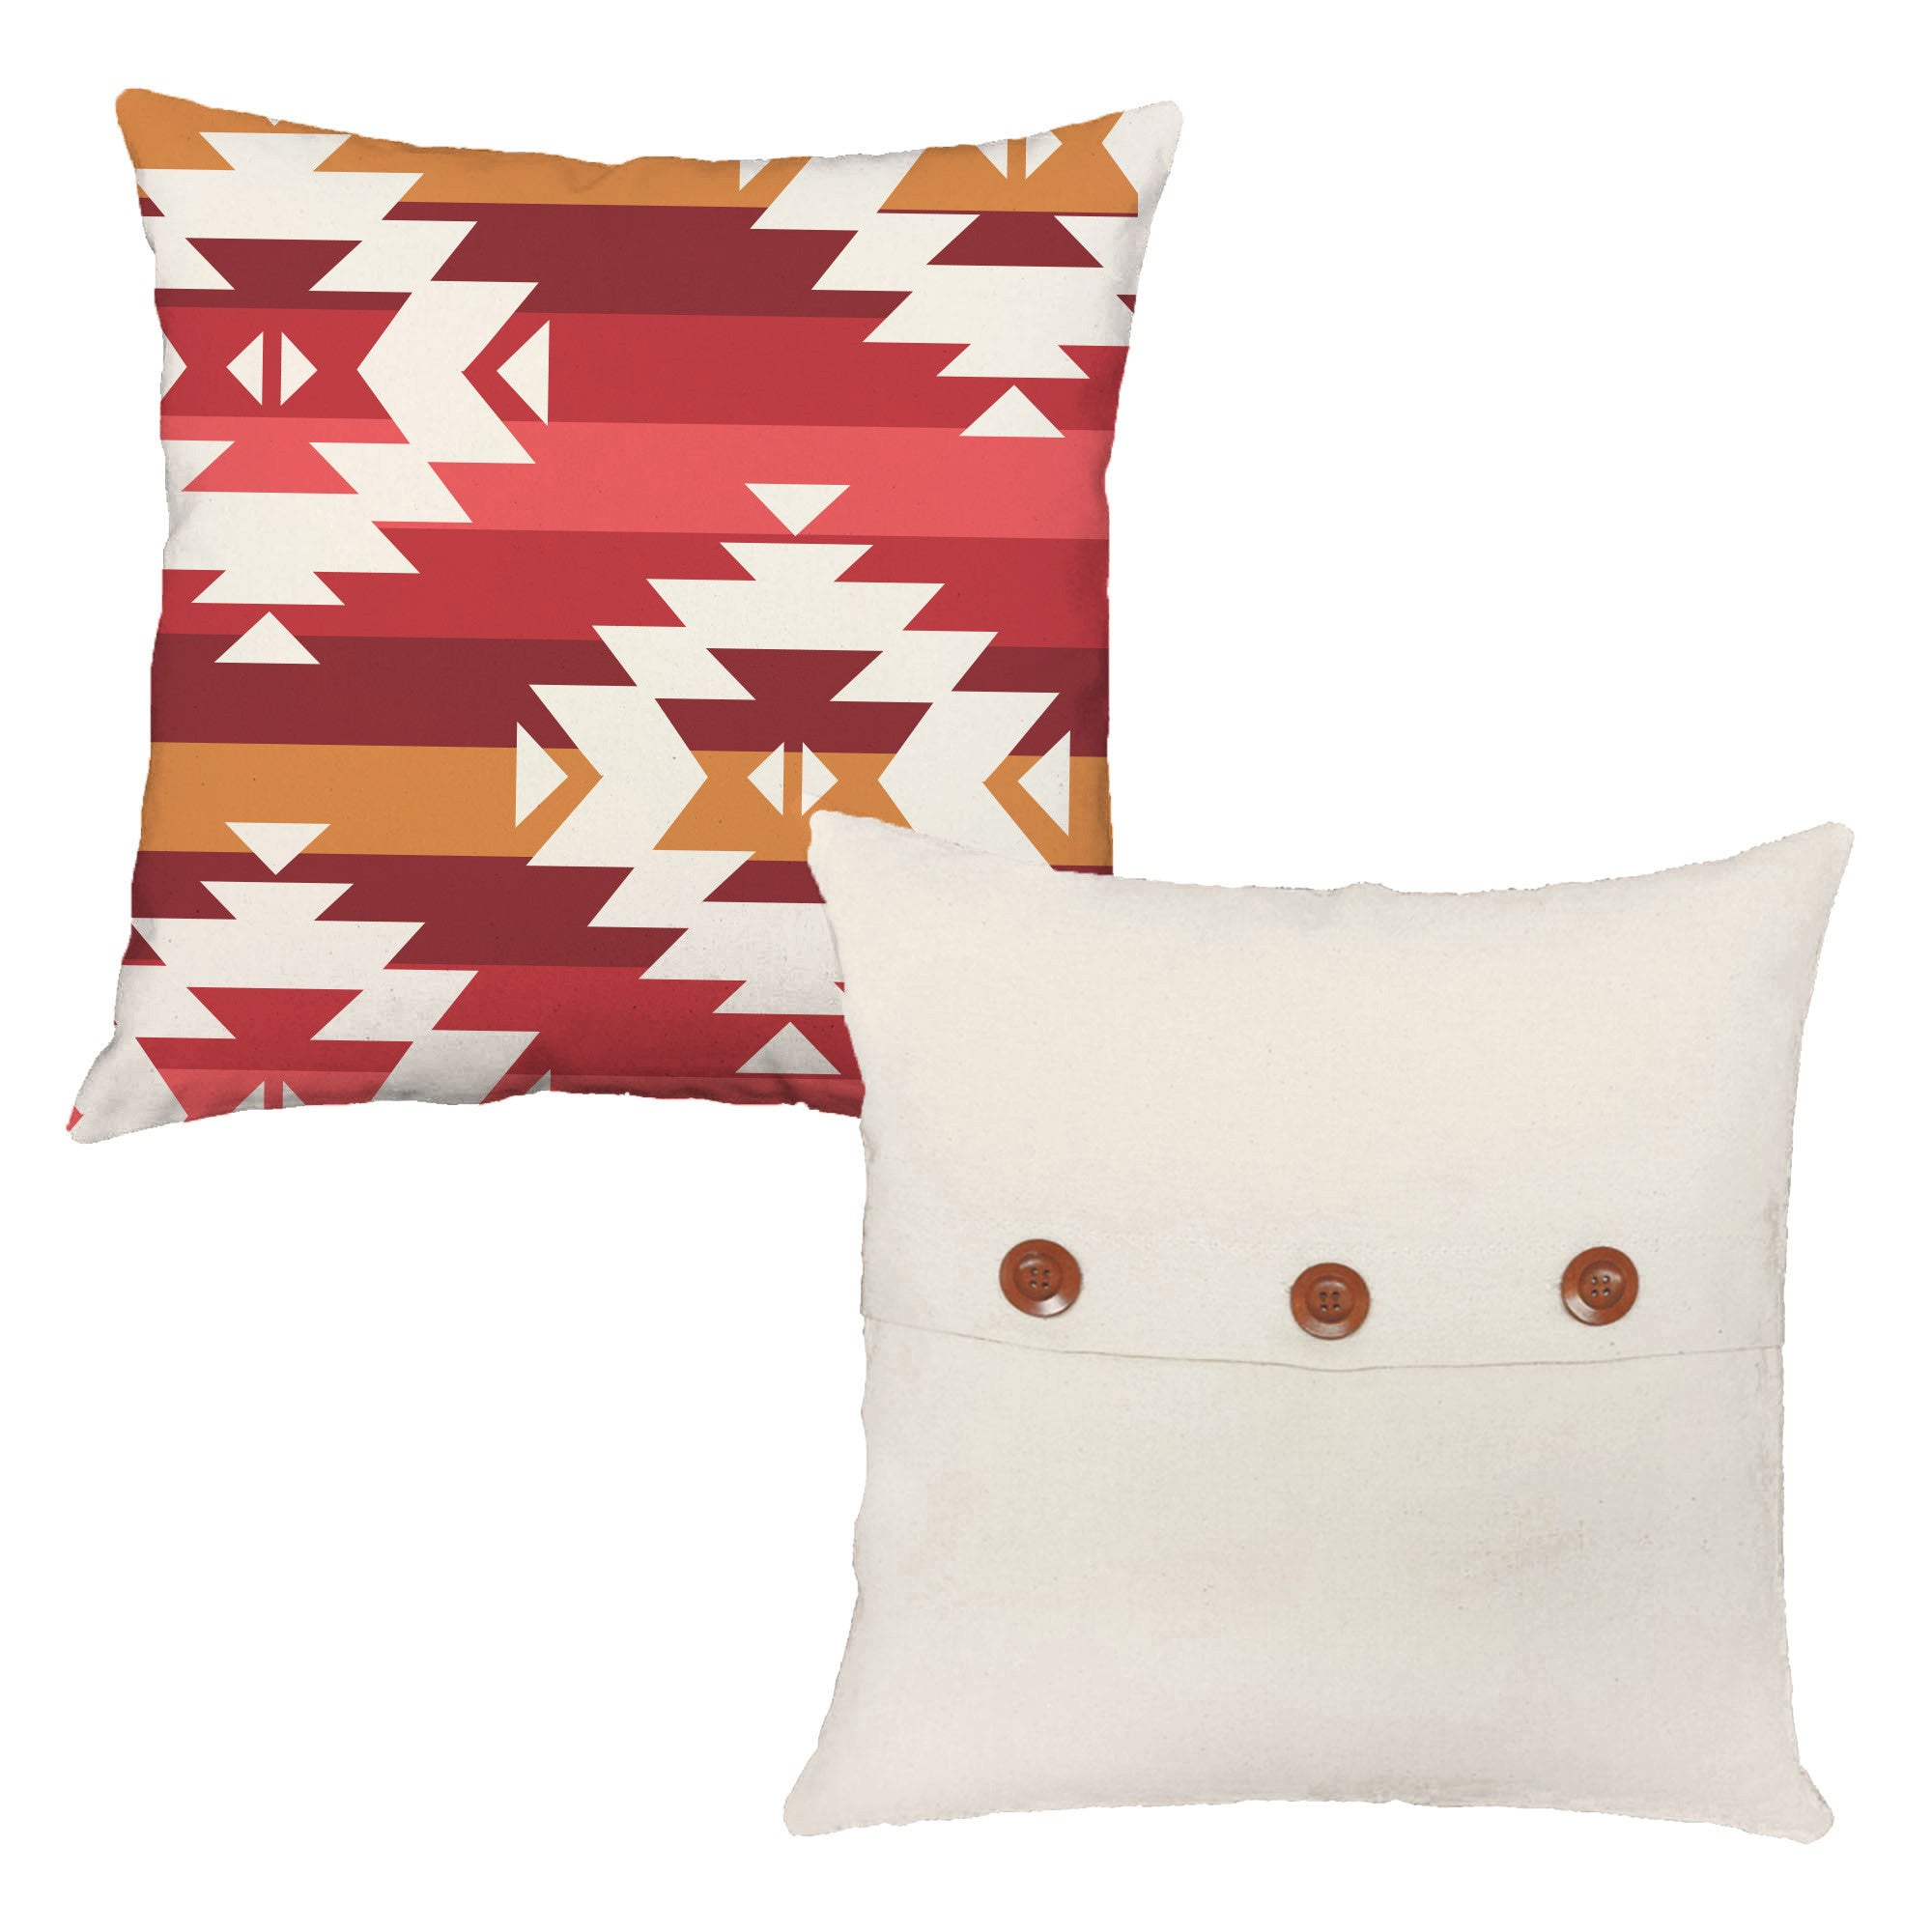 Southwest stripes throw pillows